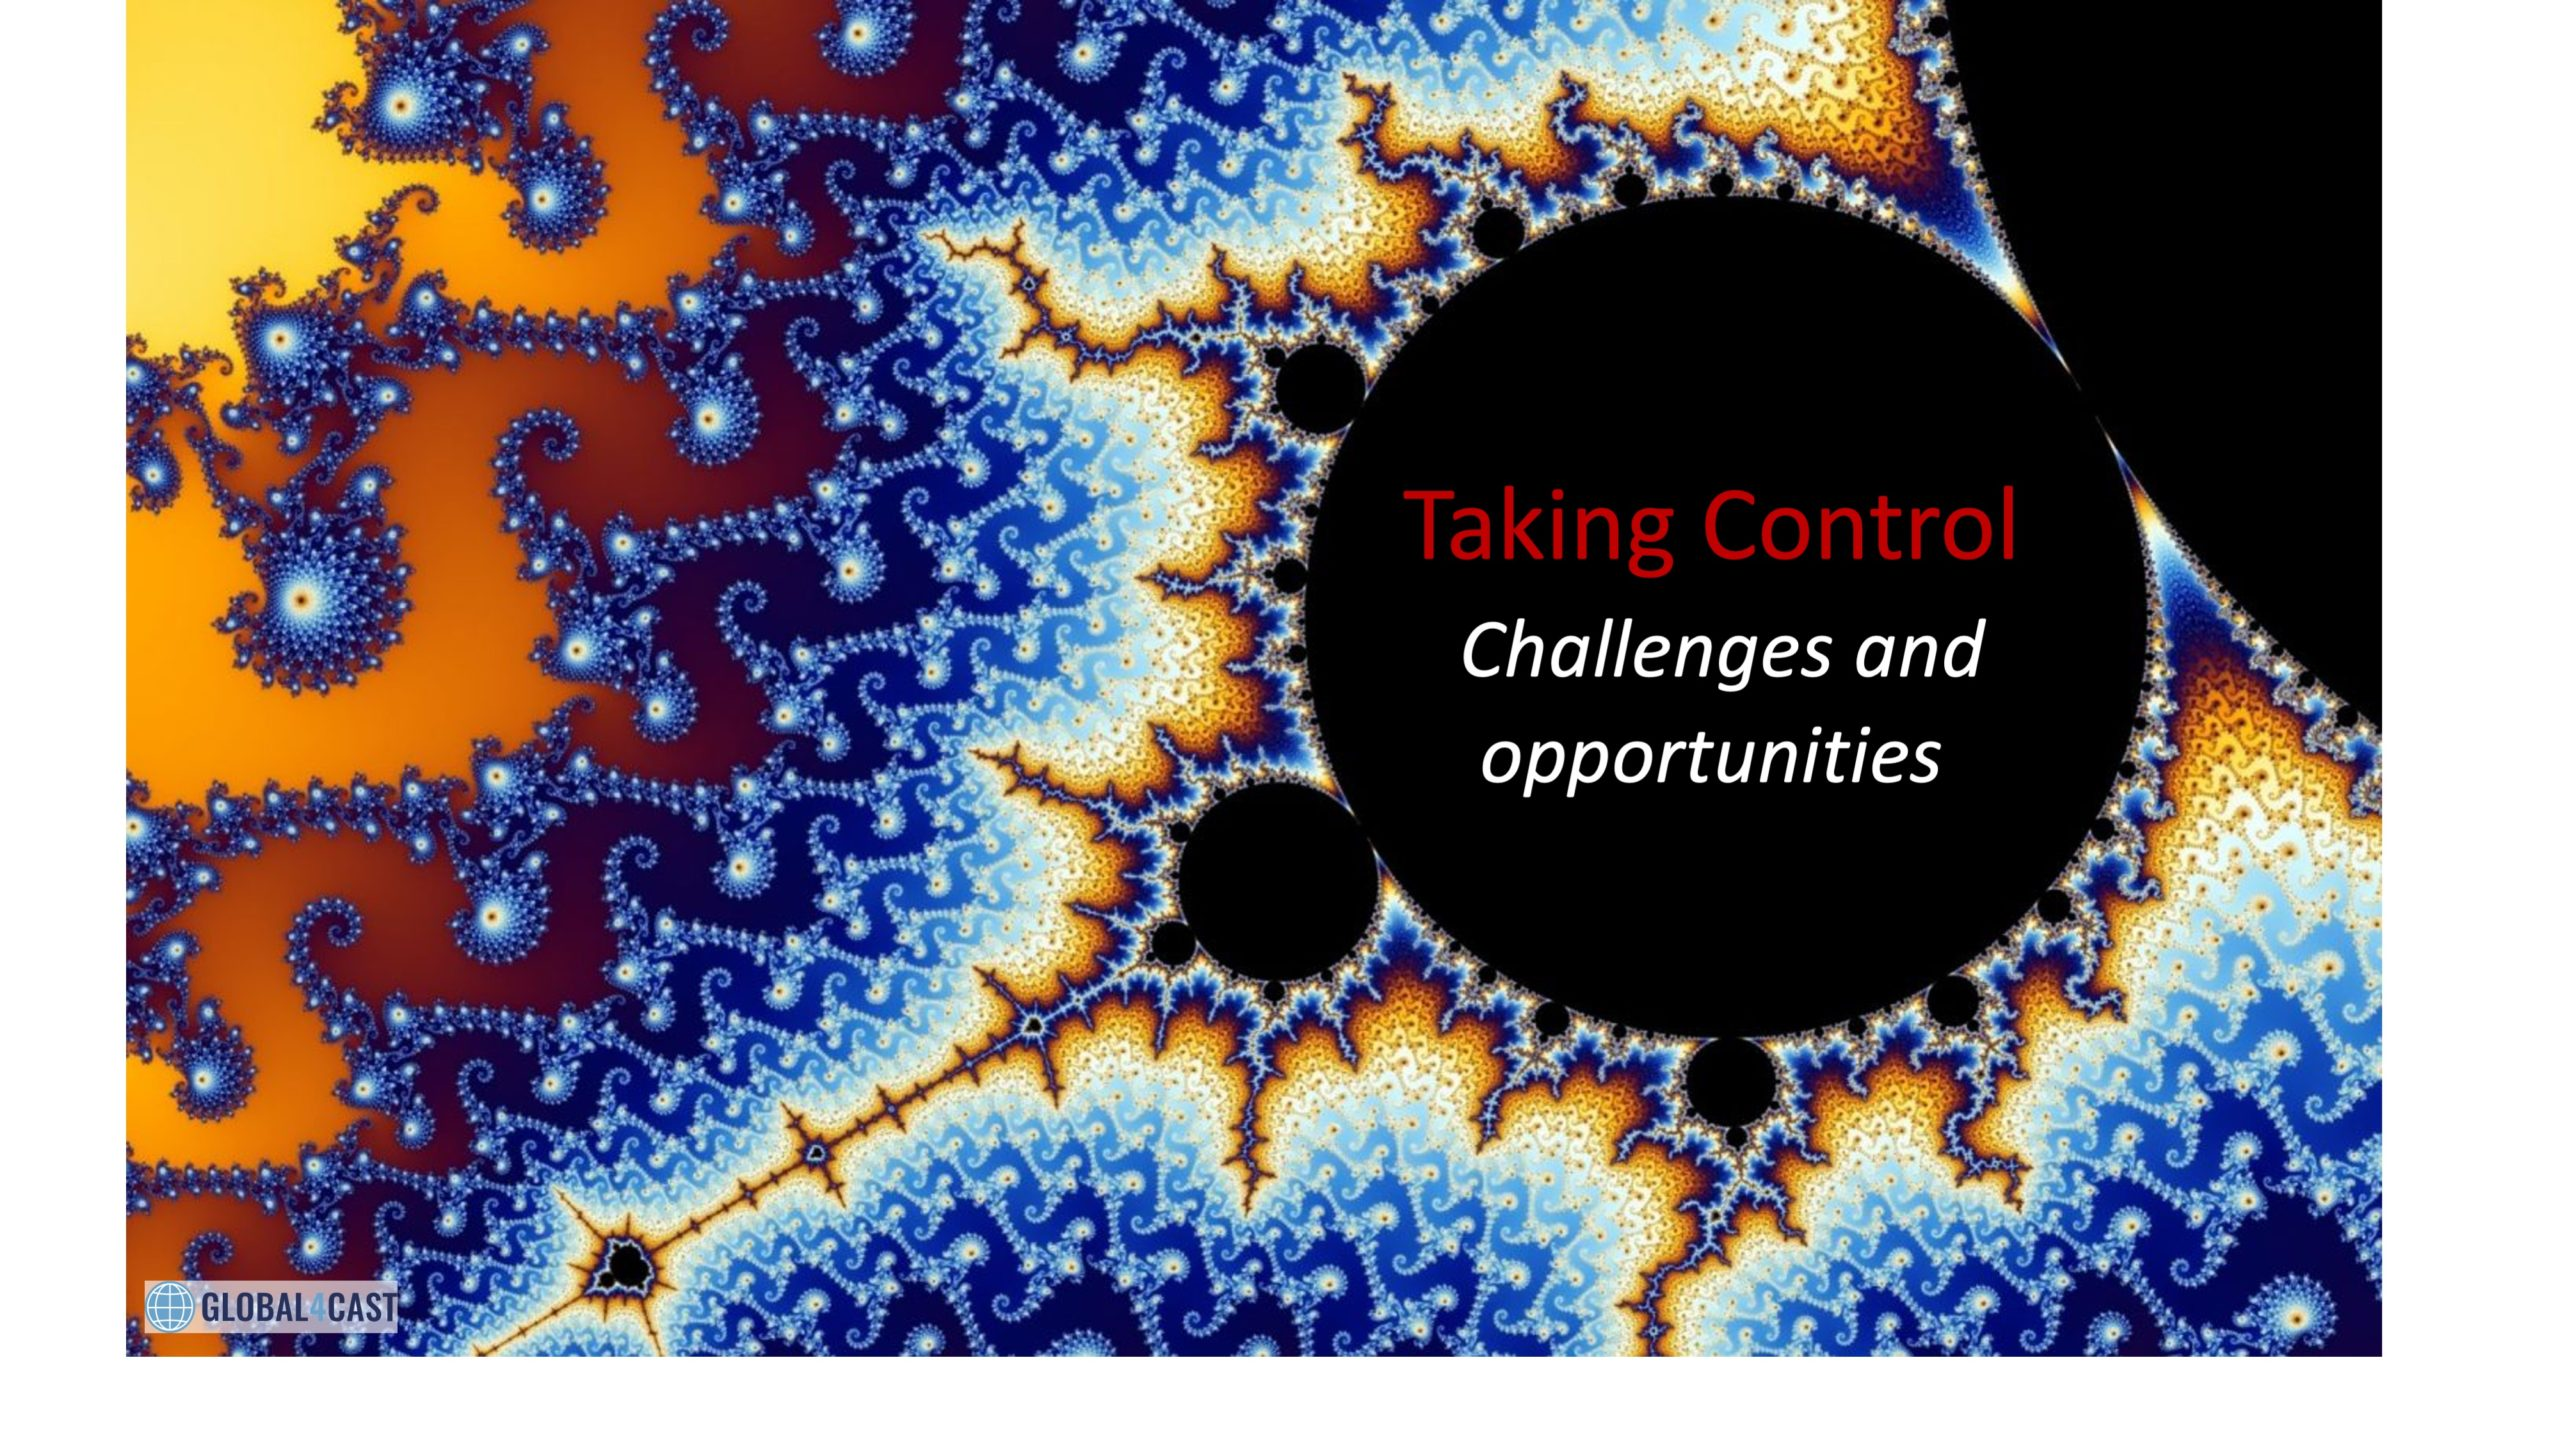 Taking Control over the Coronavirus Outbreak: Challenges and Opportunities